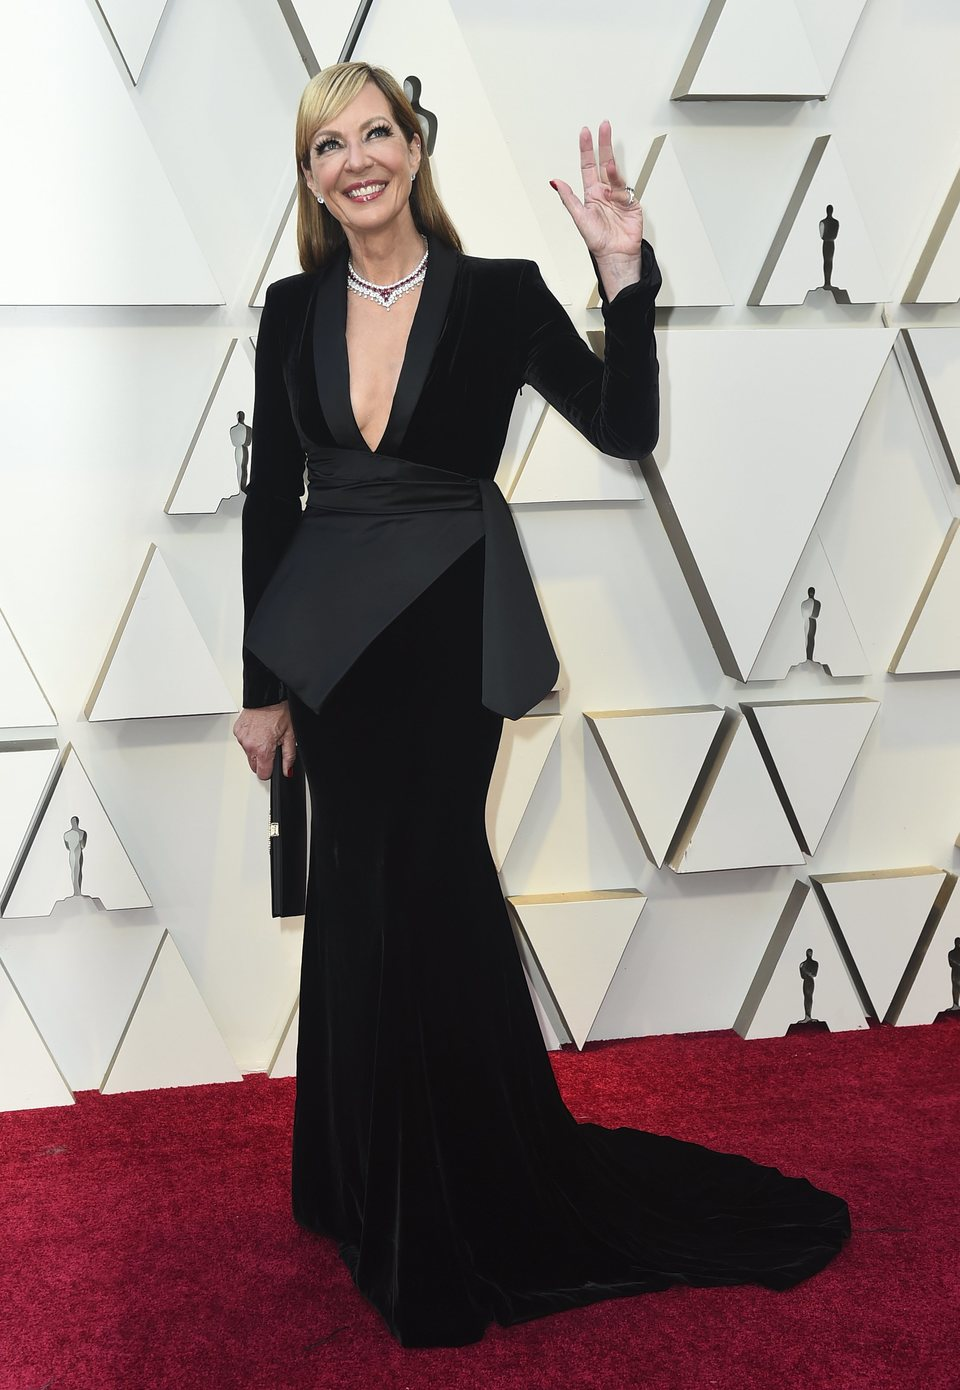 Allison Janney on the red carpet at the 2019 Oscars